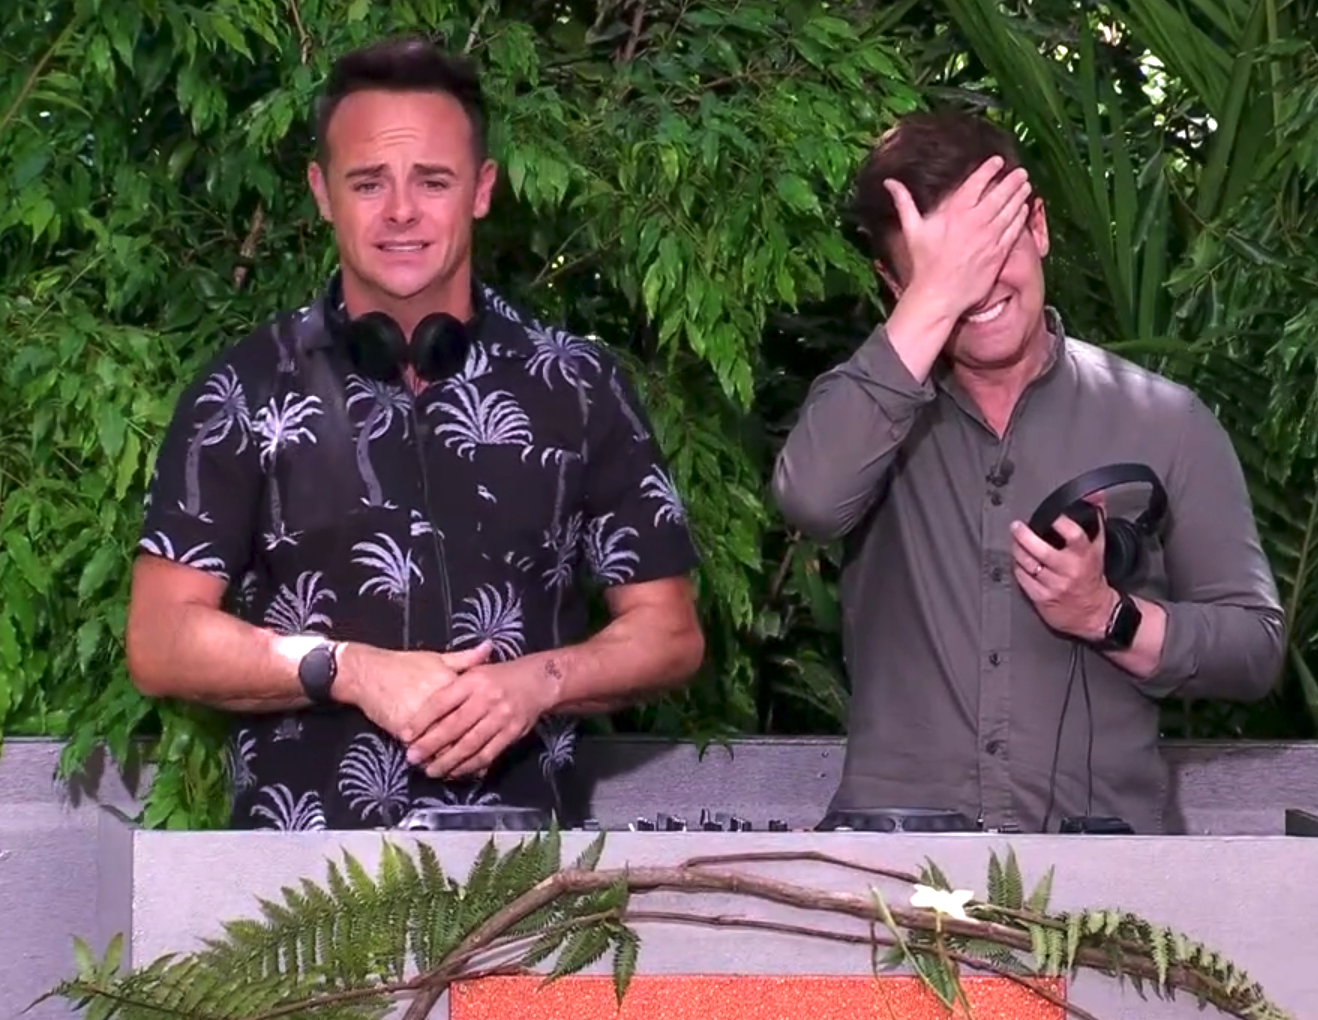 I'm A Celebrity's latest Bushtucker Trial was so disgusting even Ant and Dec were grossed out